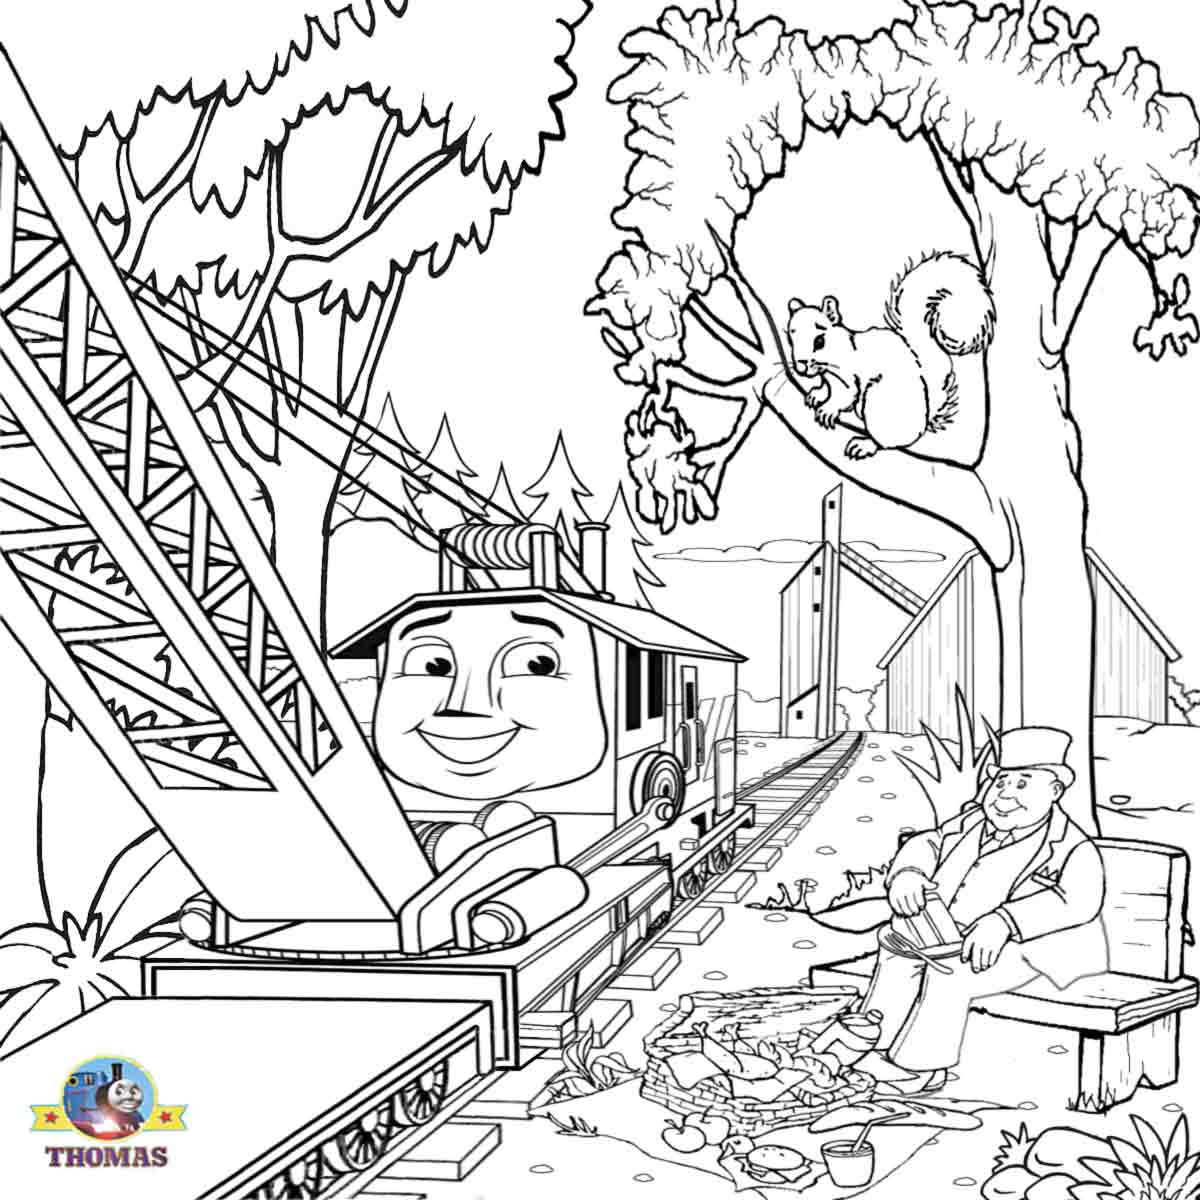 train coloring image steam engine coloring pages at getcoloringscom free image coloring train